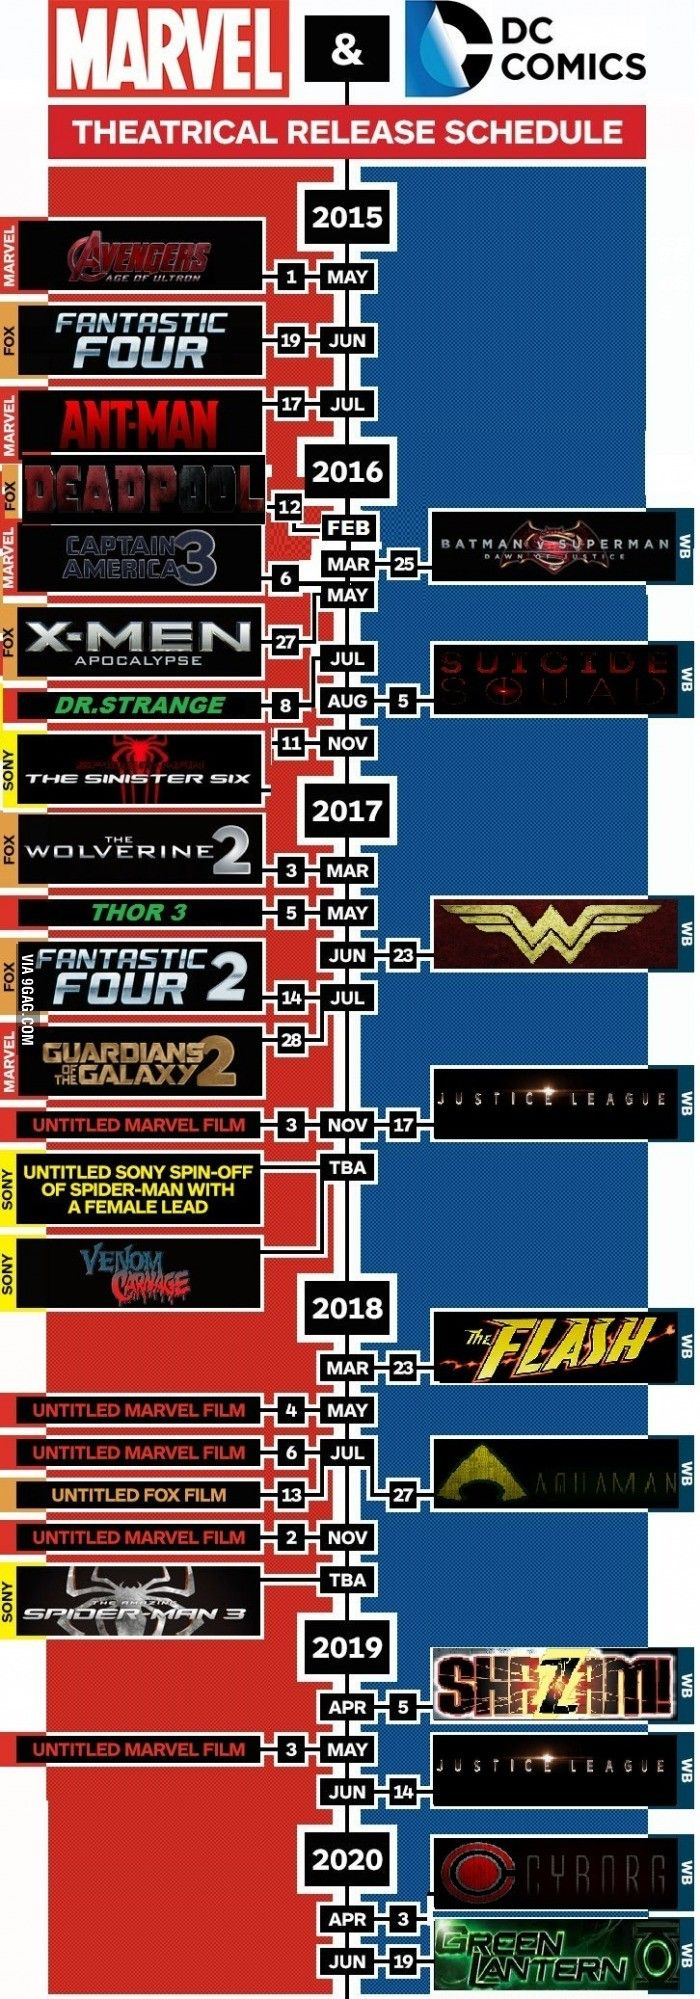 After their big announcements, this is the list of movies we're waiting for in the coming years. Too much waiting!